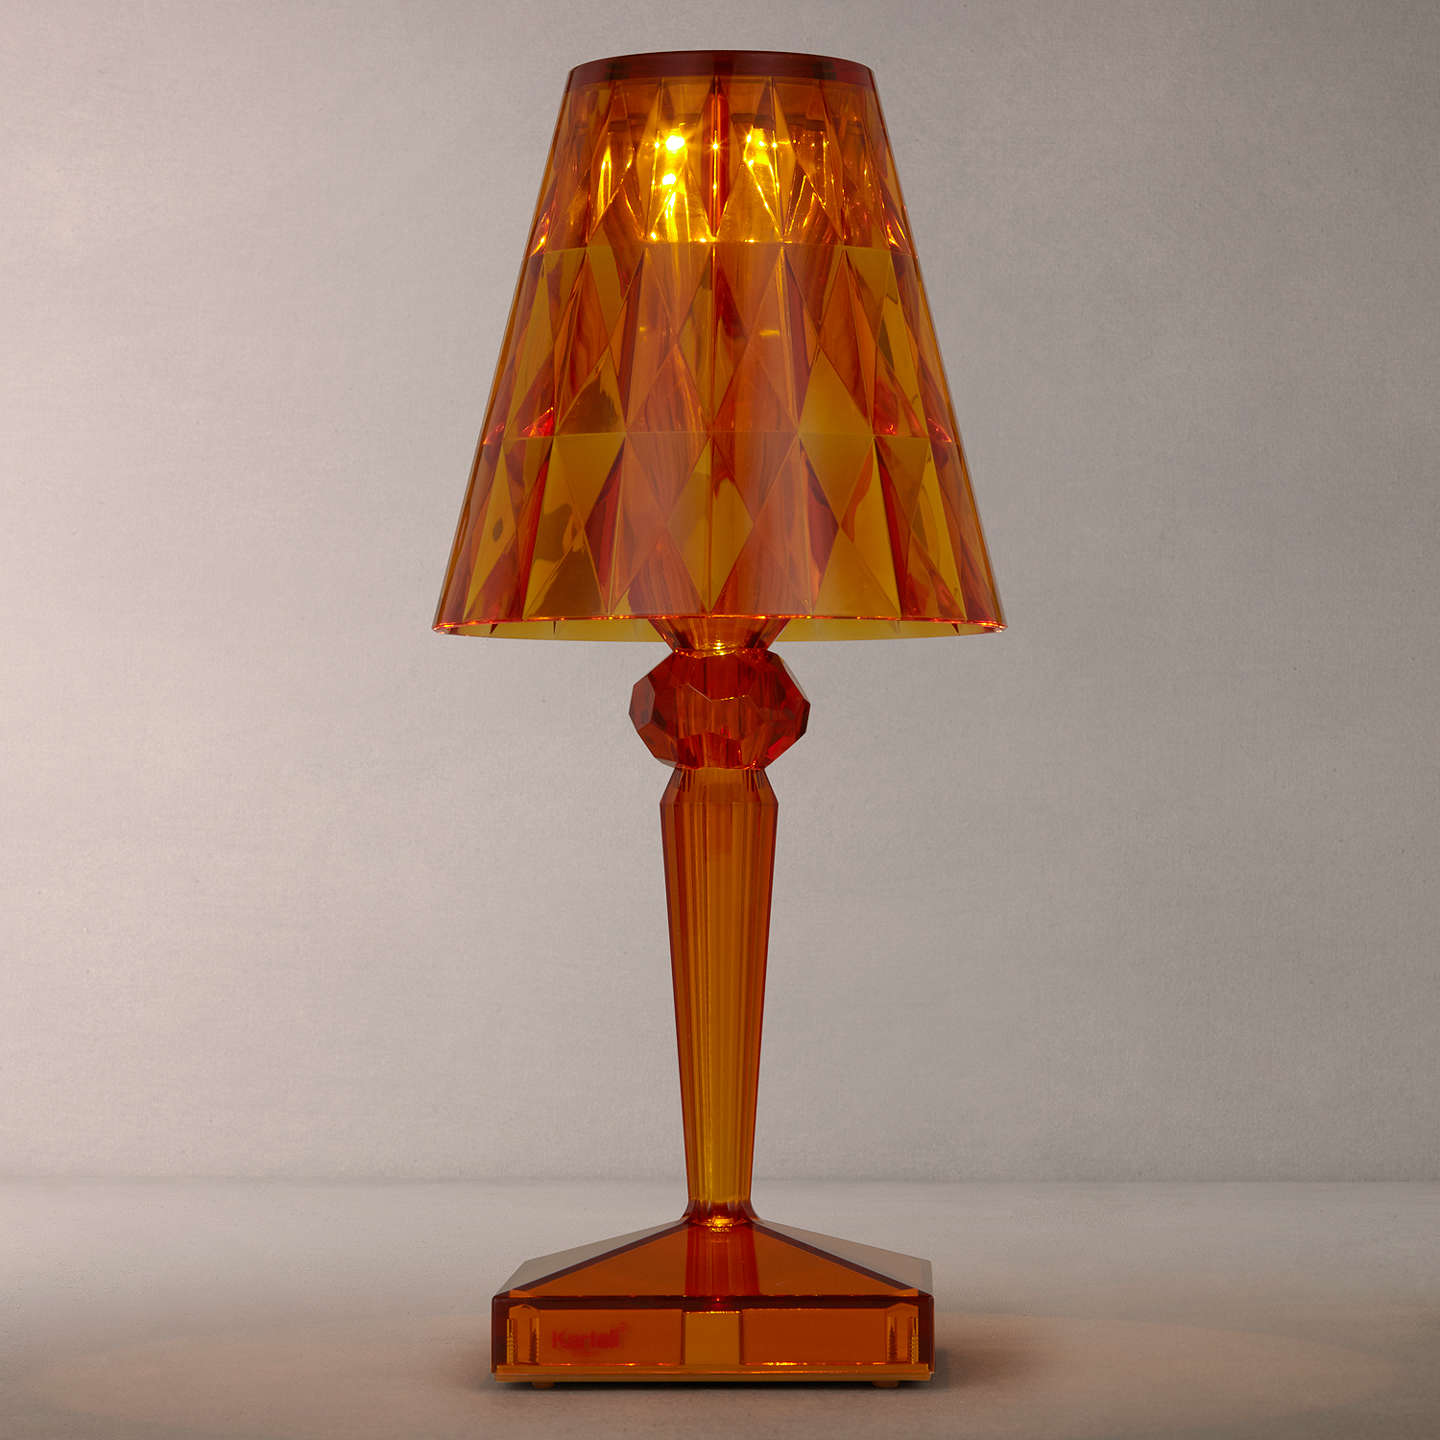 BuyKartell Battery Table Lamp, Amber Online At Johnlewis.com ...